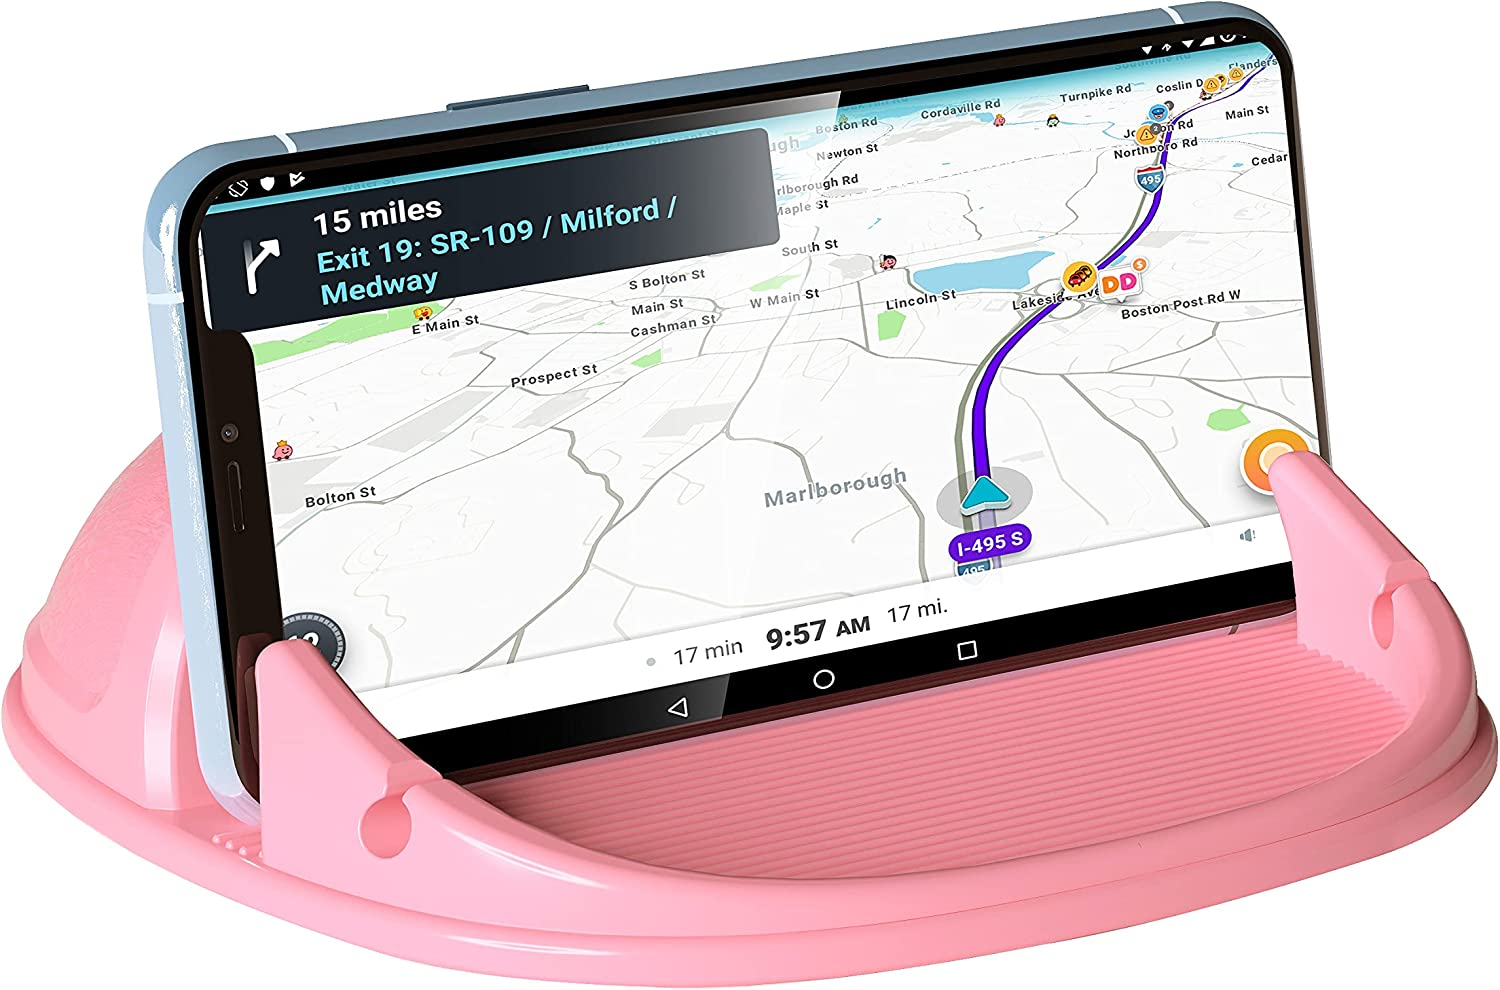 Loncaster Car Phone Holder, Car Phone Mount Silicone Car Pad Mat for Various Dashboards, Slip Free Desk Phone Stand Compatible with iPhone, Samsung, Android Smartphones, GPS Devices and More, Pink